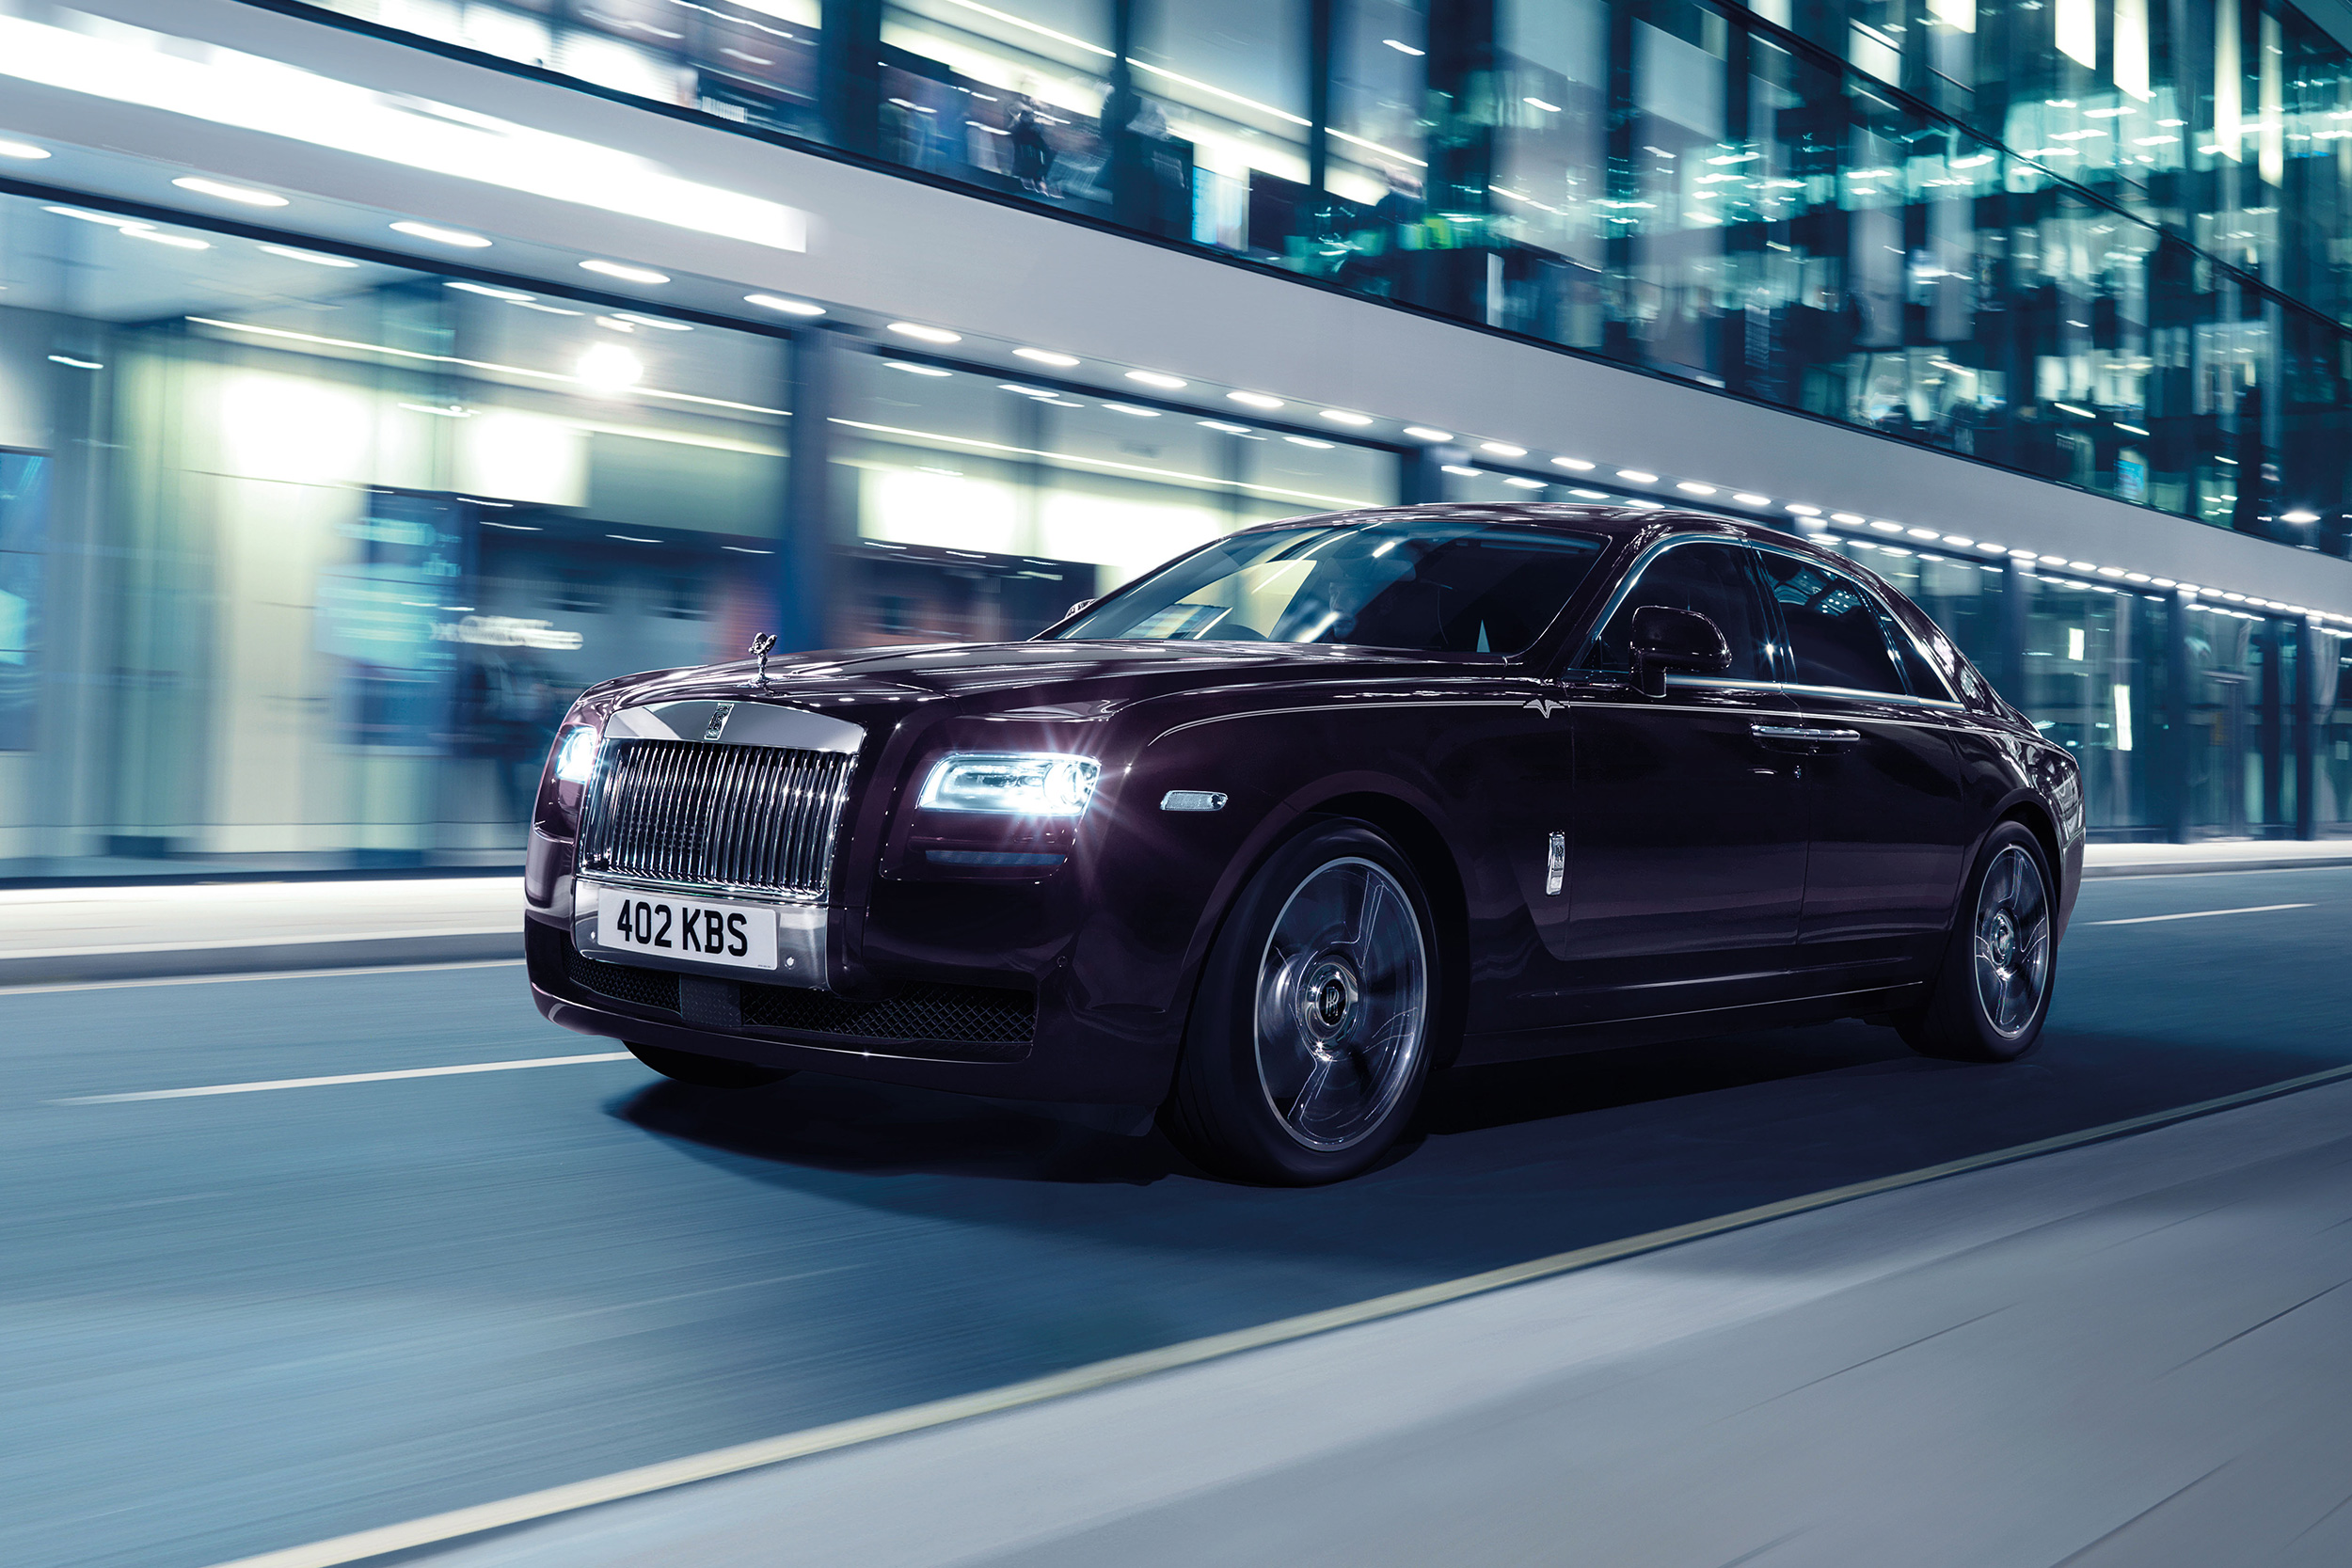 Rolls Royce Cars International Car Price Overview